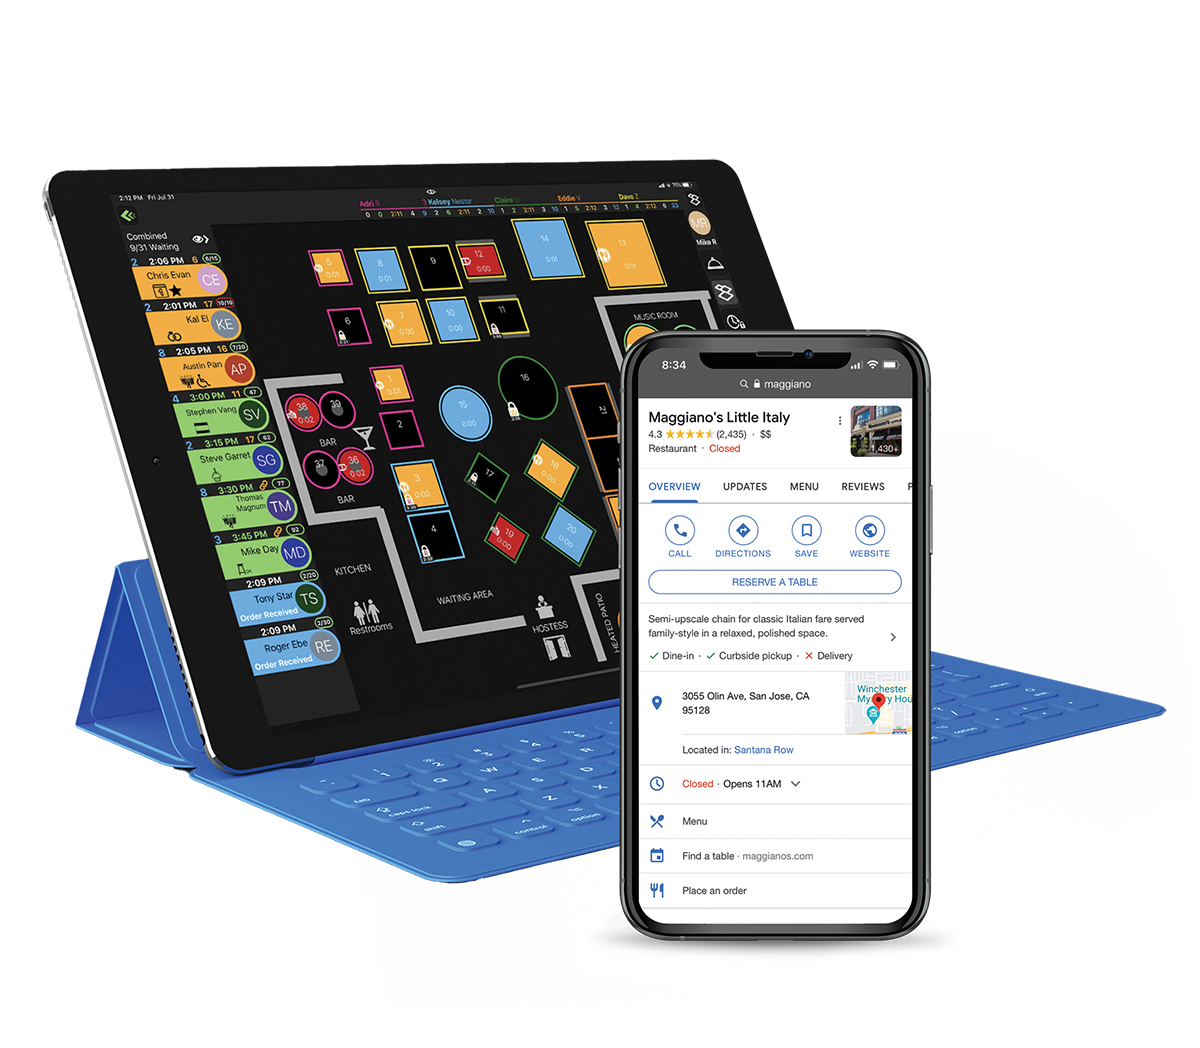 SpotOn Restaurant Software - SpotOn Reserve: Online reservations, Reserve with Google, Digital waitlisting, Contact tracing, Automated SMS confirmations, Two-way table-ready messaging, Guest text surveys